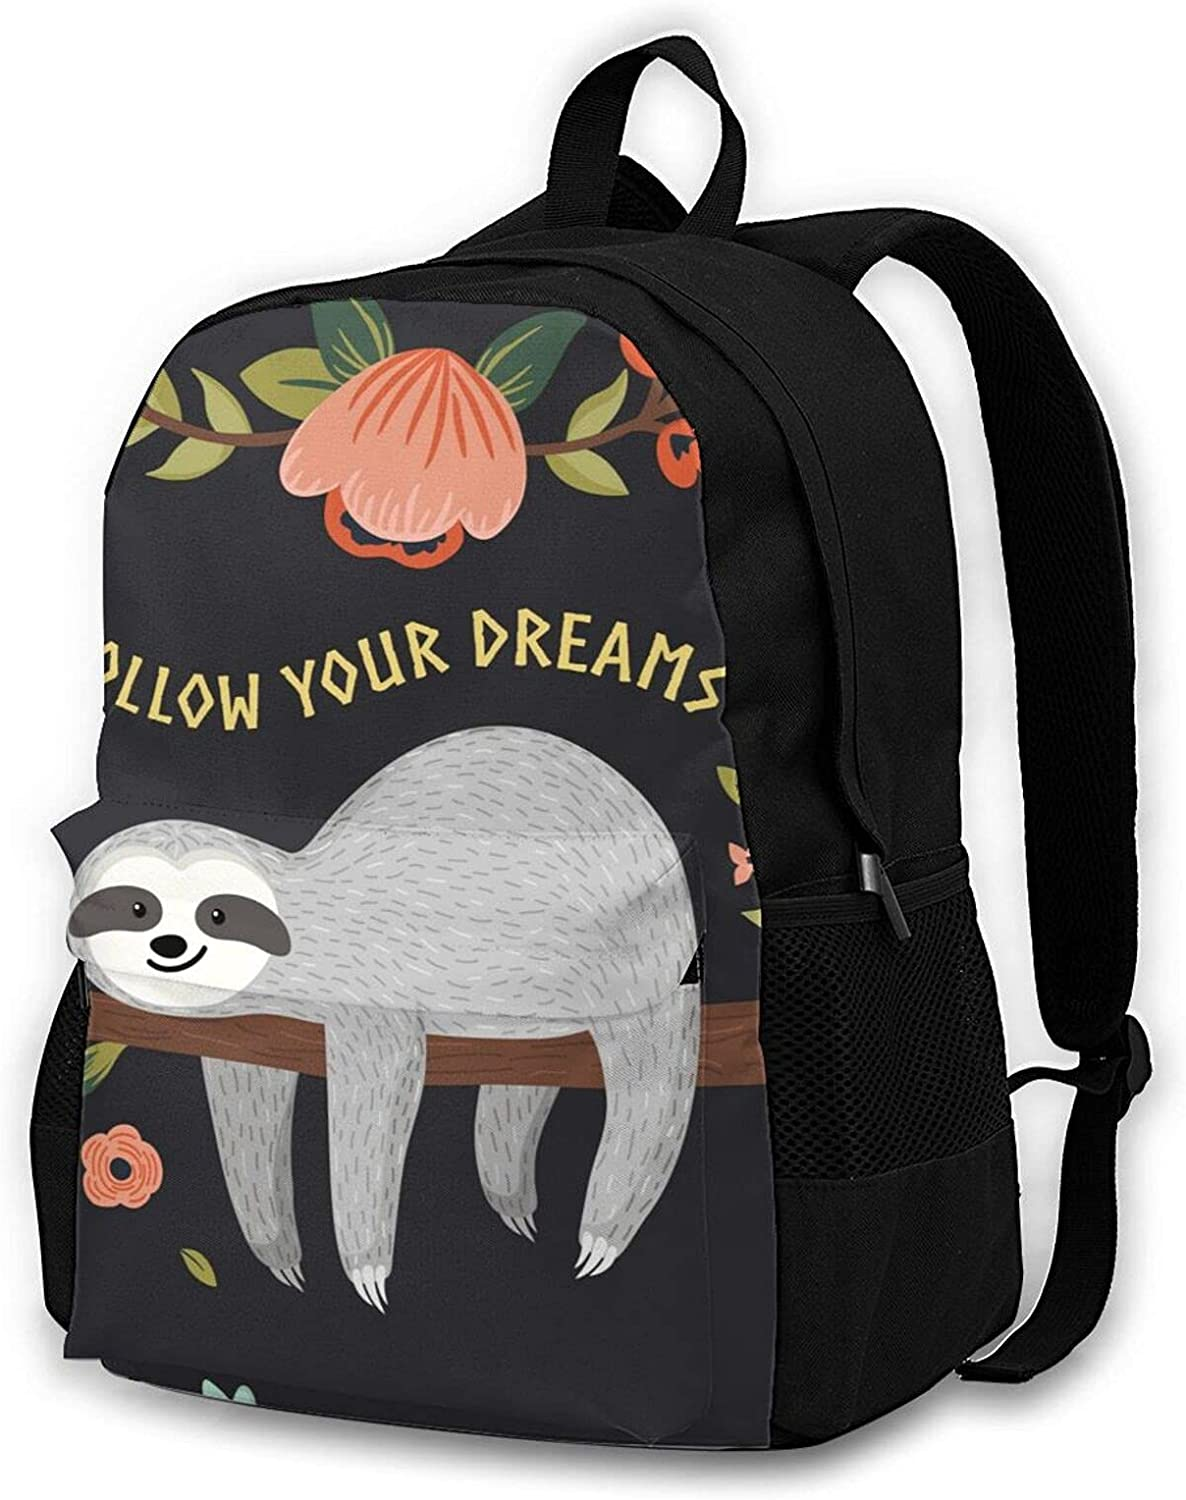 Sloth-follow Travel Laptop Backpack for Men Women College School Computer Bookbag with Business Anti Theft Water Resistant